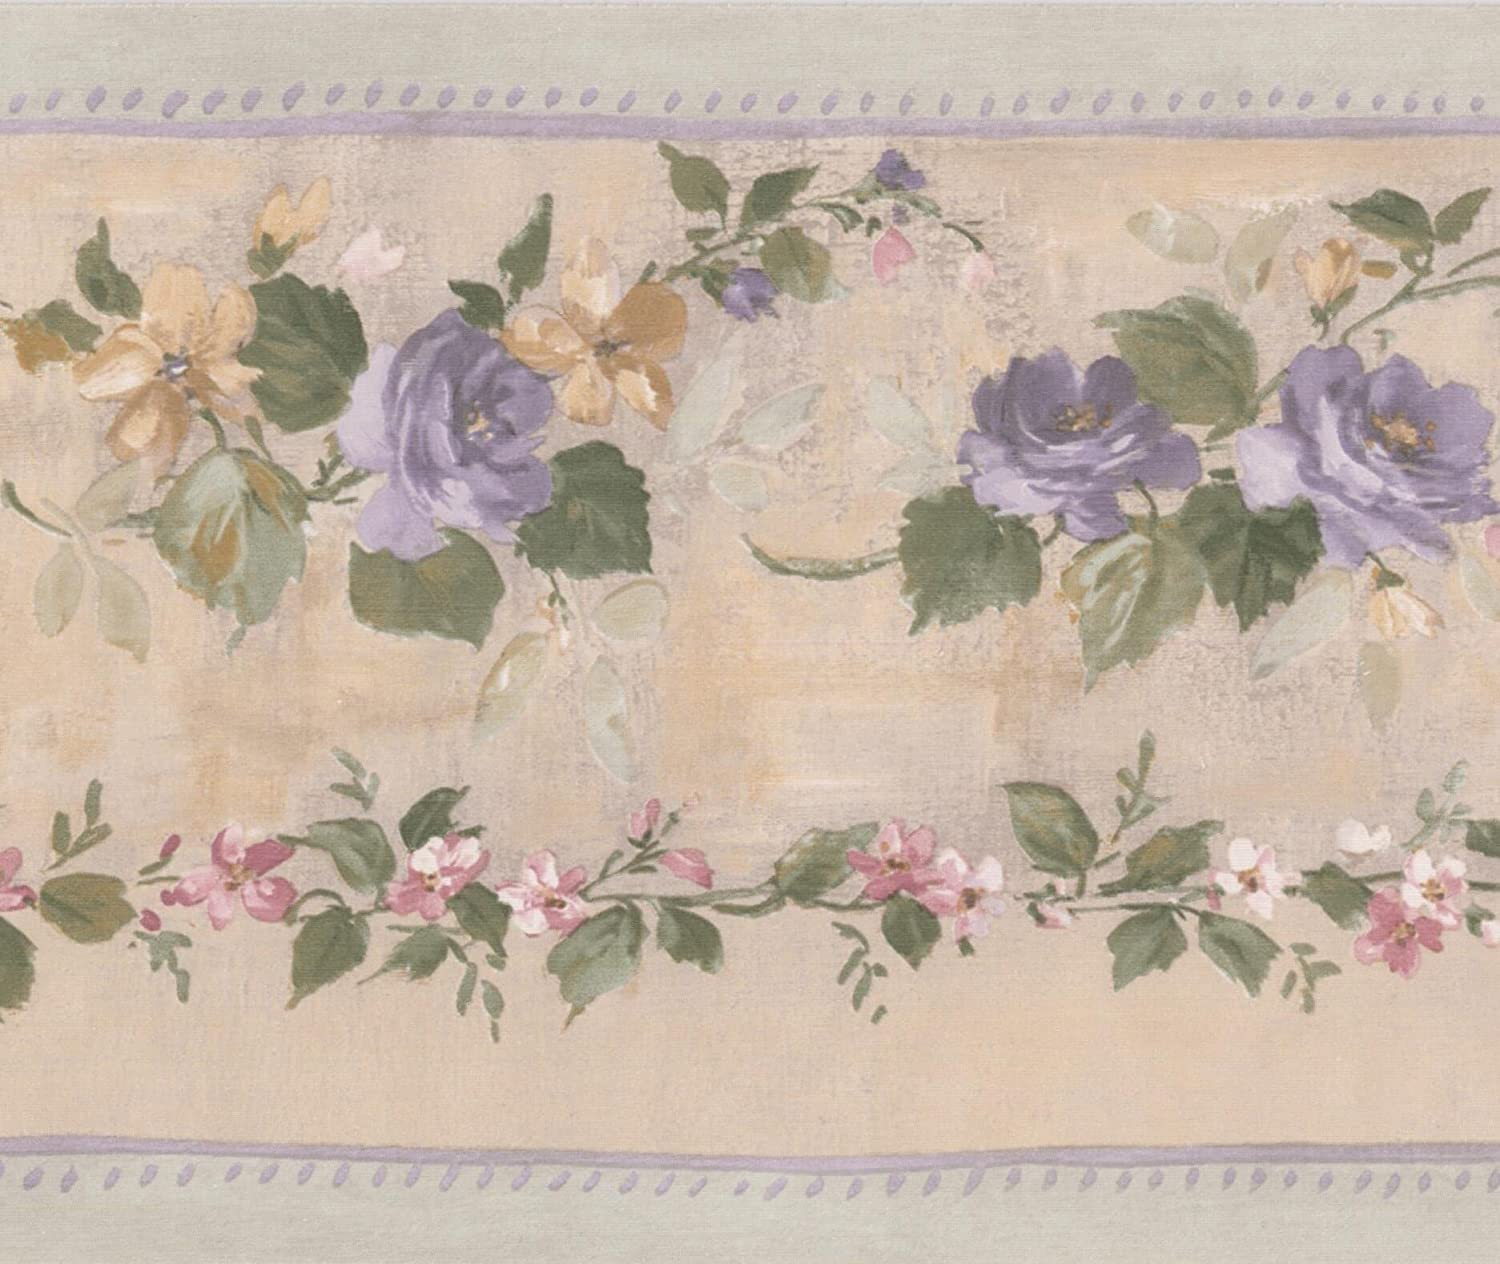 Purple Bloomed Roses On Vine Beige Floral Wallpaper Border Retro